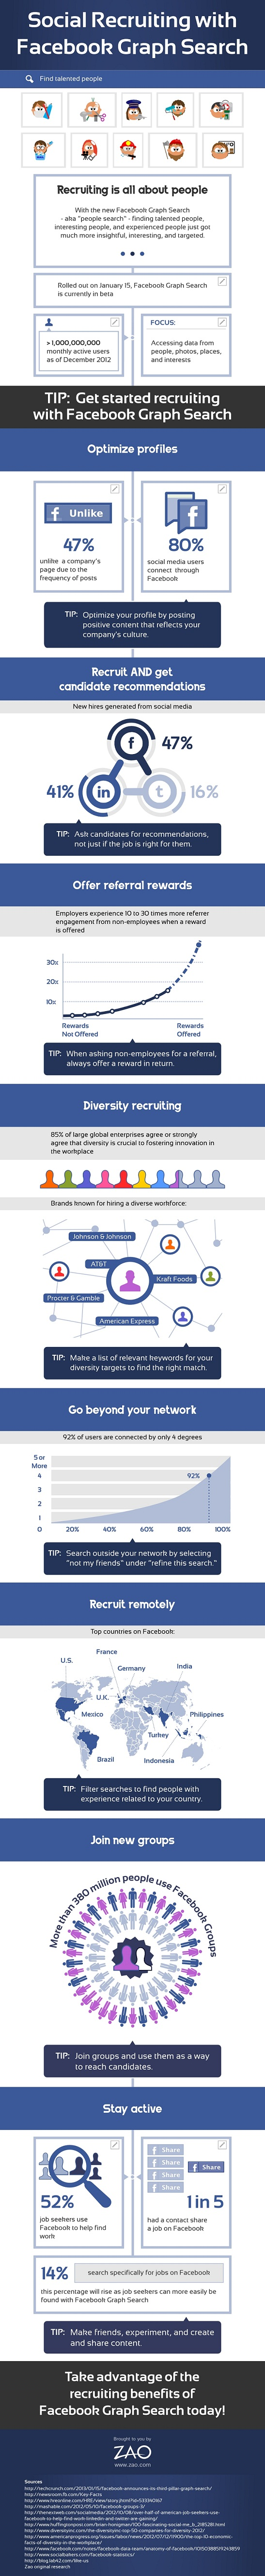 social recruting with facebook infographic